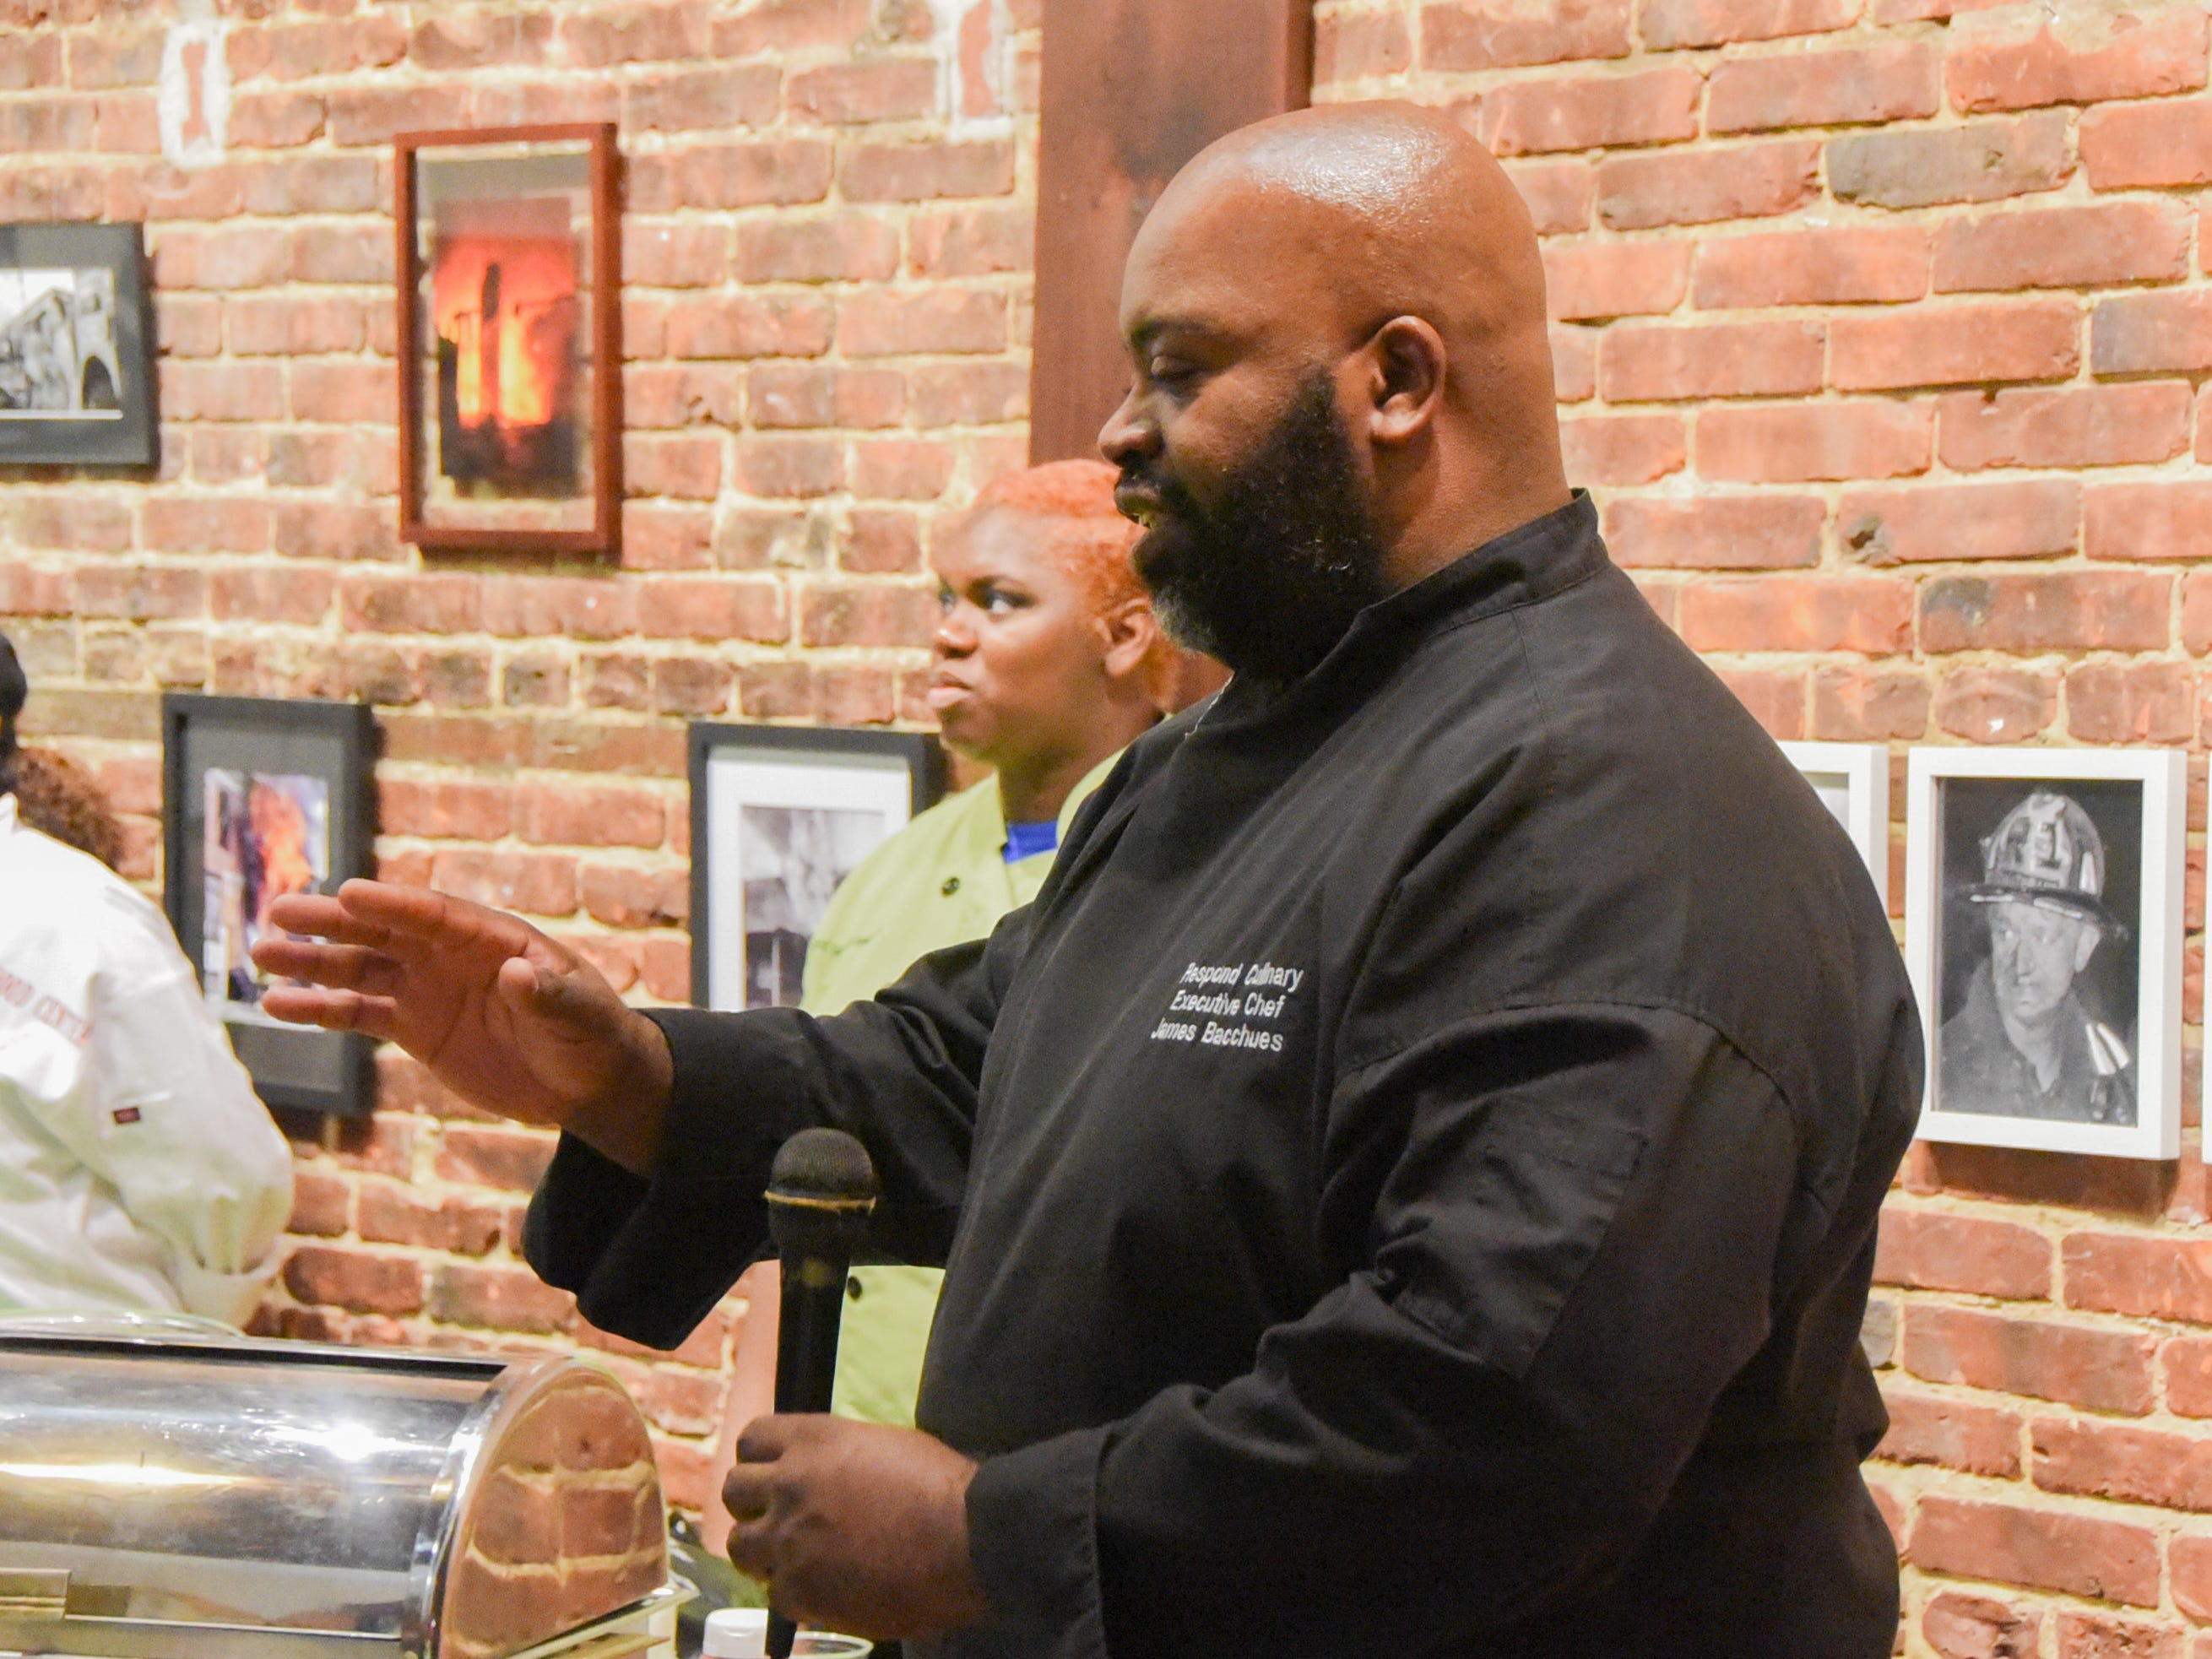 Respond Culinary Executive Chef James Bacchues speaks during the #WasteNot for CFET event at the FireWorks Gallery in South Camden on Saturday, September 29, 2018.  The Courier-Post partnered with the Farm & Fisherman Tavern in Cherry Hill and other community organizations to hold the event that offered a special tasting, farm tour and community conversation about reducing food waste.